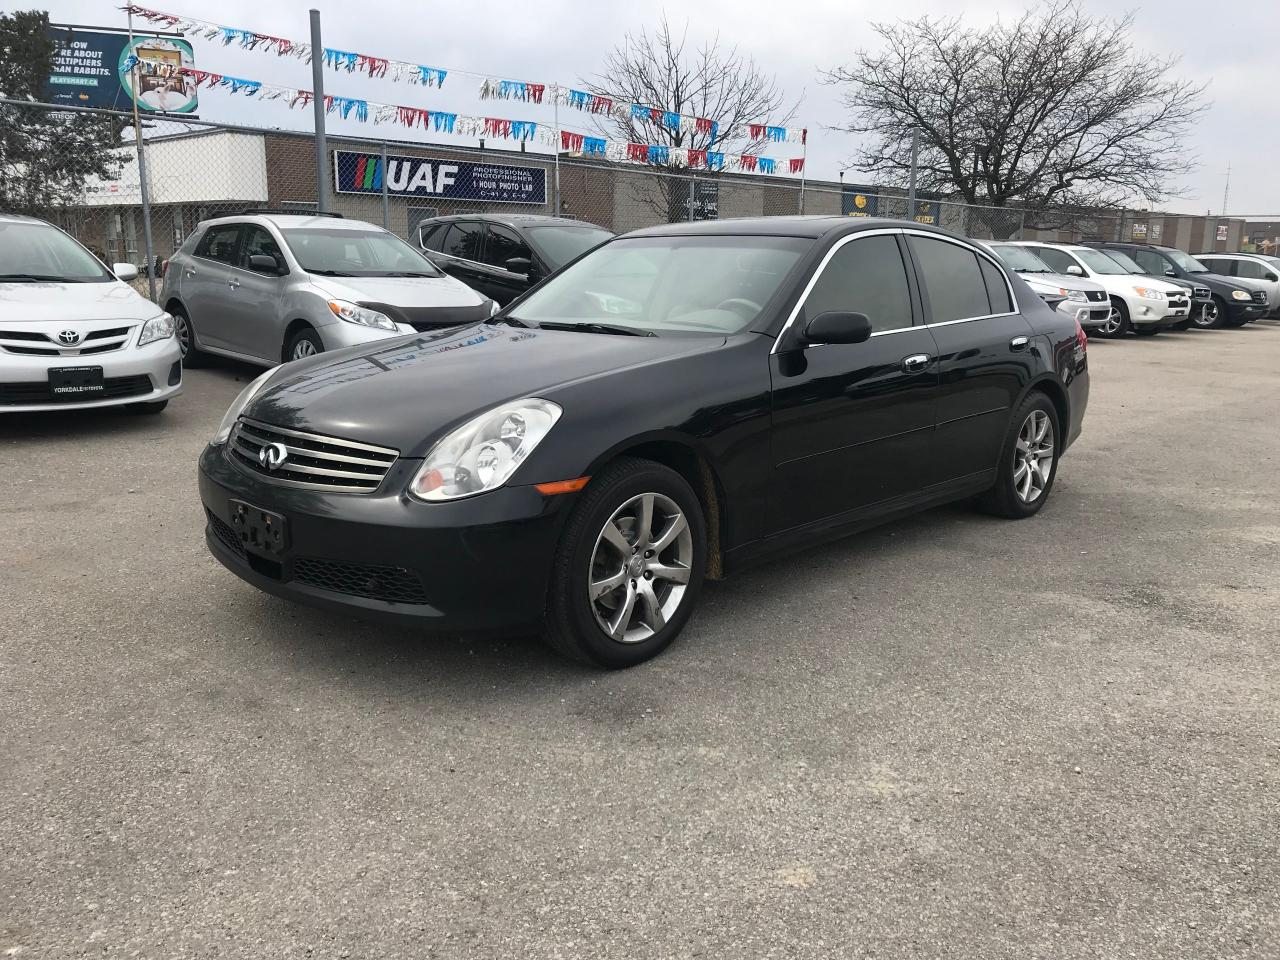 used 2005 infiniti g35x auto awd 4doors 139k safety 3years warranty includ for sale in toronto ontario carpages ca [ 1280 x 960 Pixel ]